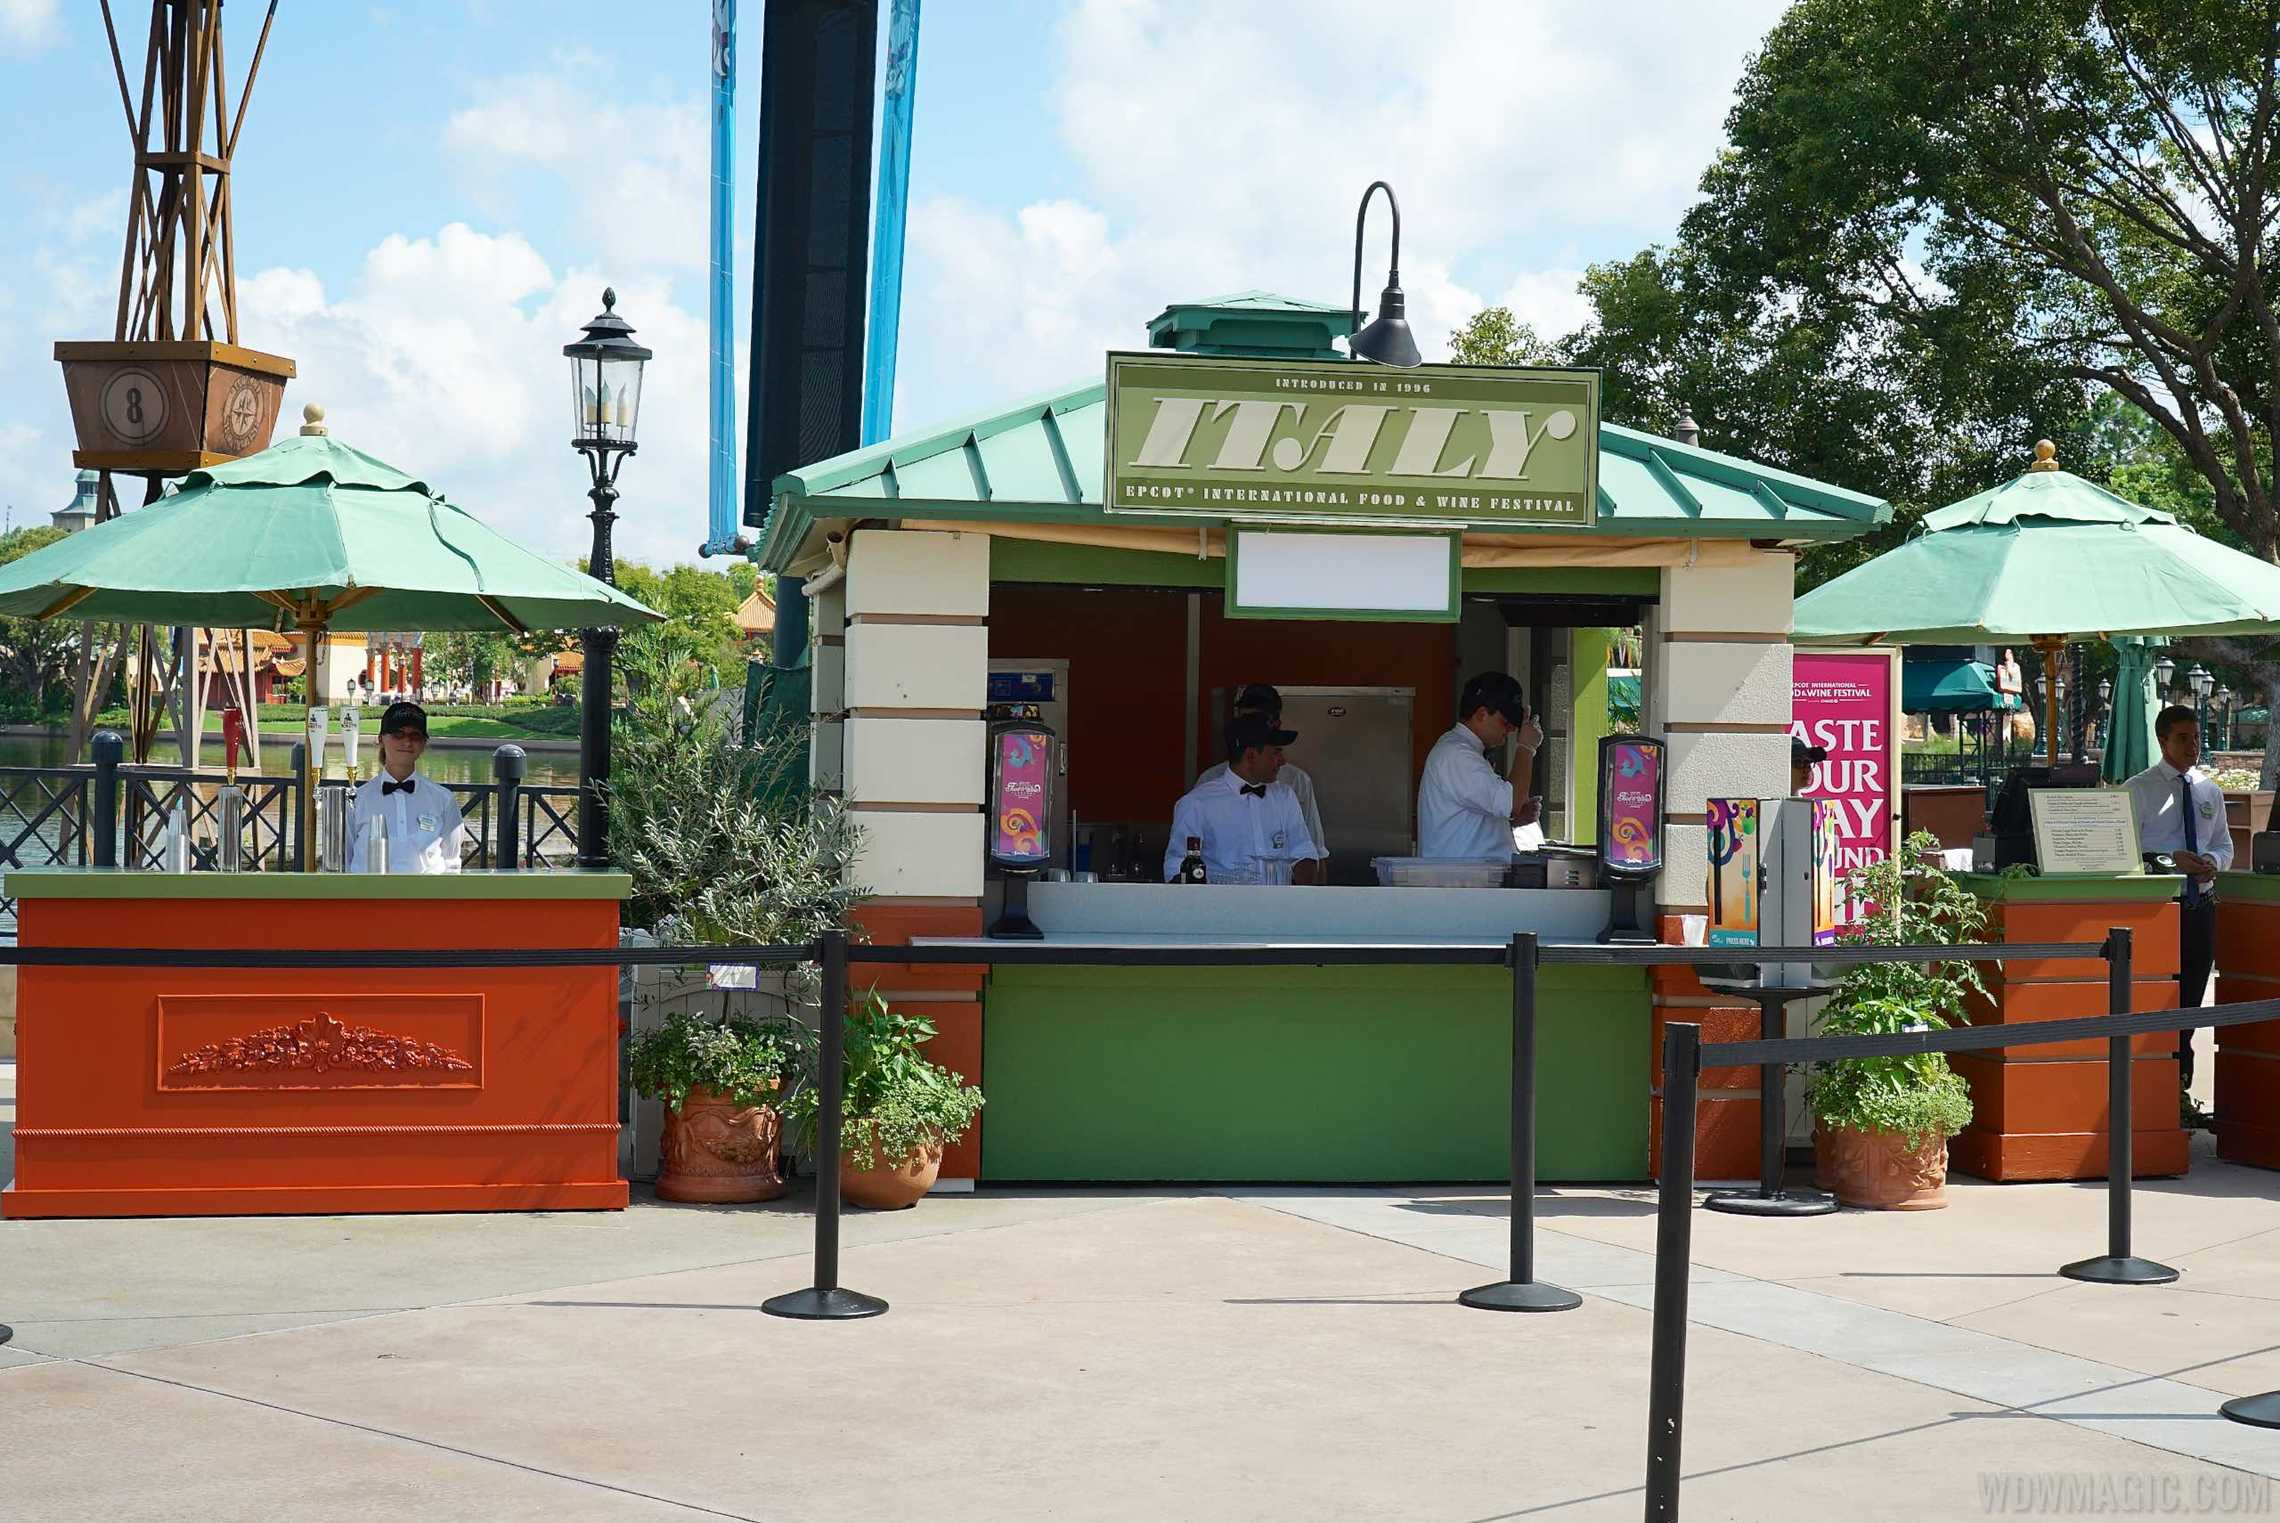 Italy Food and Wine Festival kiosk